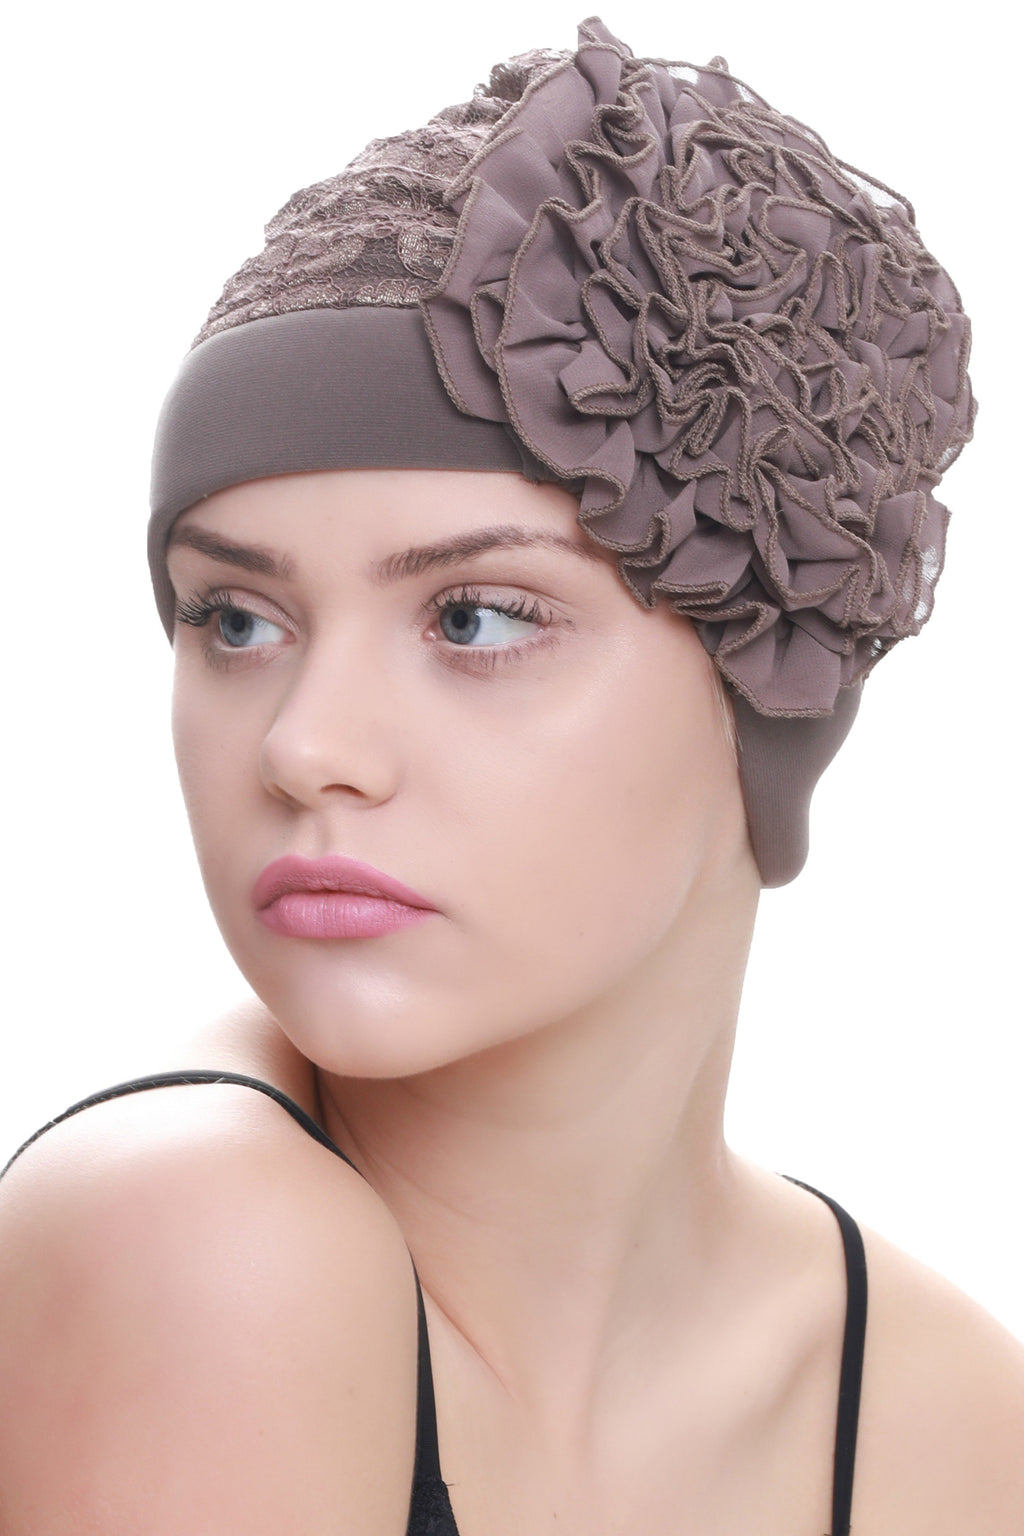 Deresina Lace hairloss headwear with ruffle flower mink